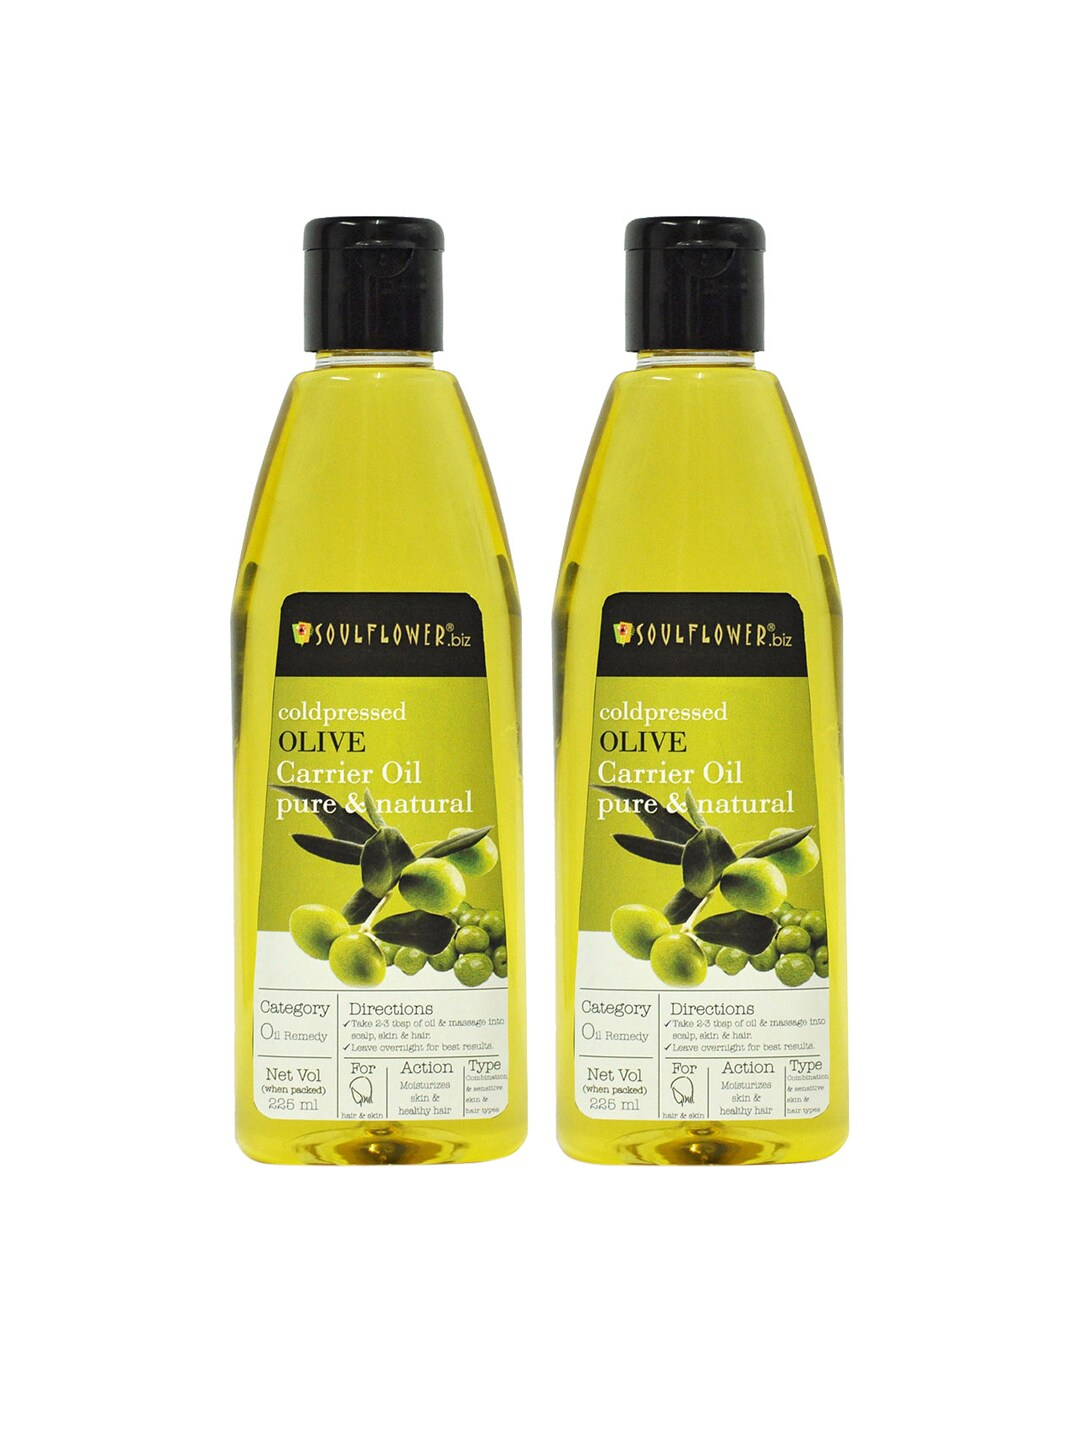 Soulflower Set of 2 Coldpressed Olive Carrier Oils 225ml image